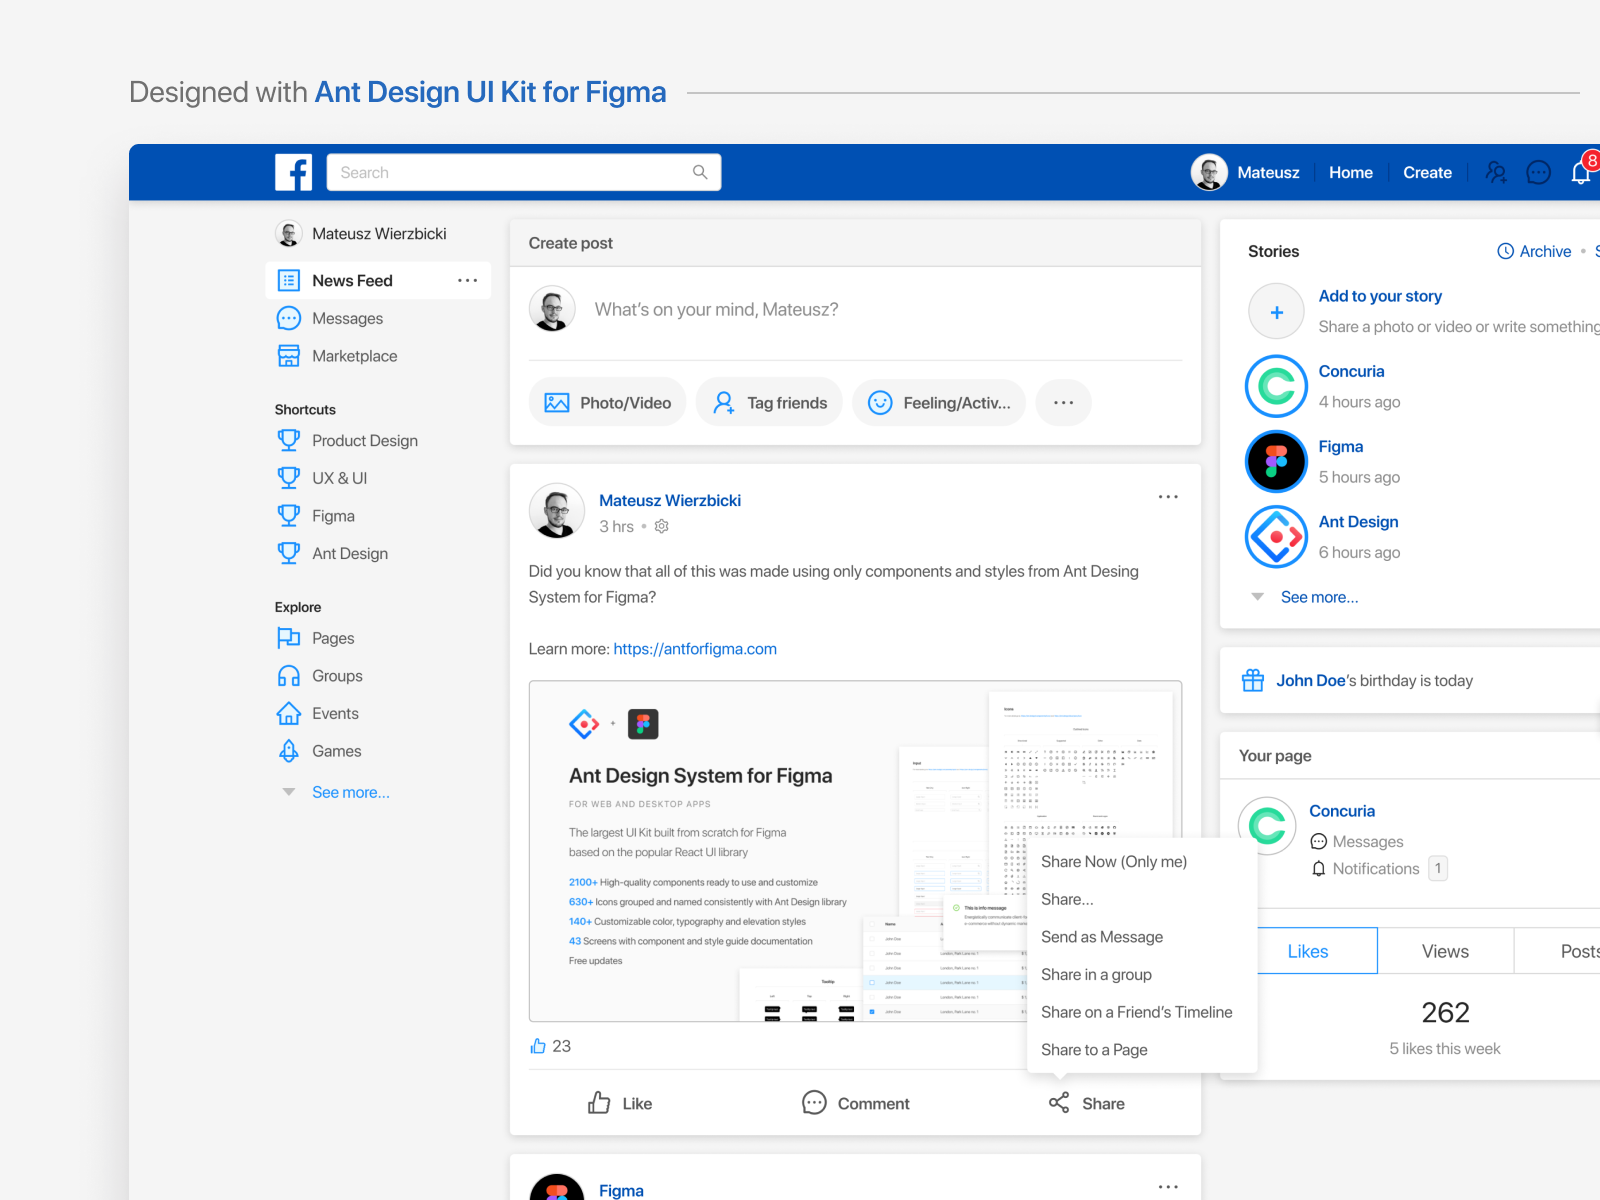 Facebook - designed with Ant Design UI Kit for Figma by